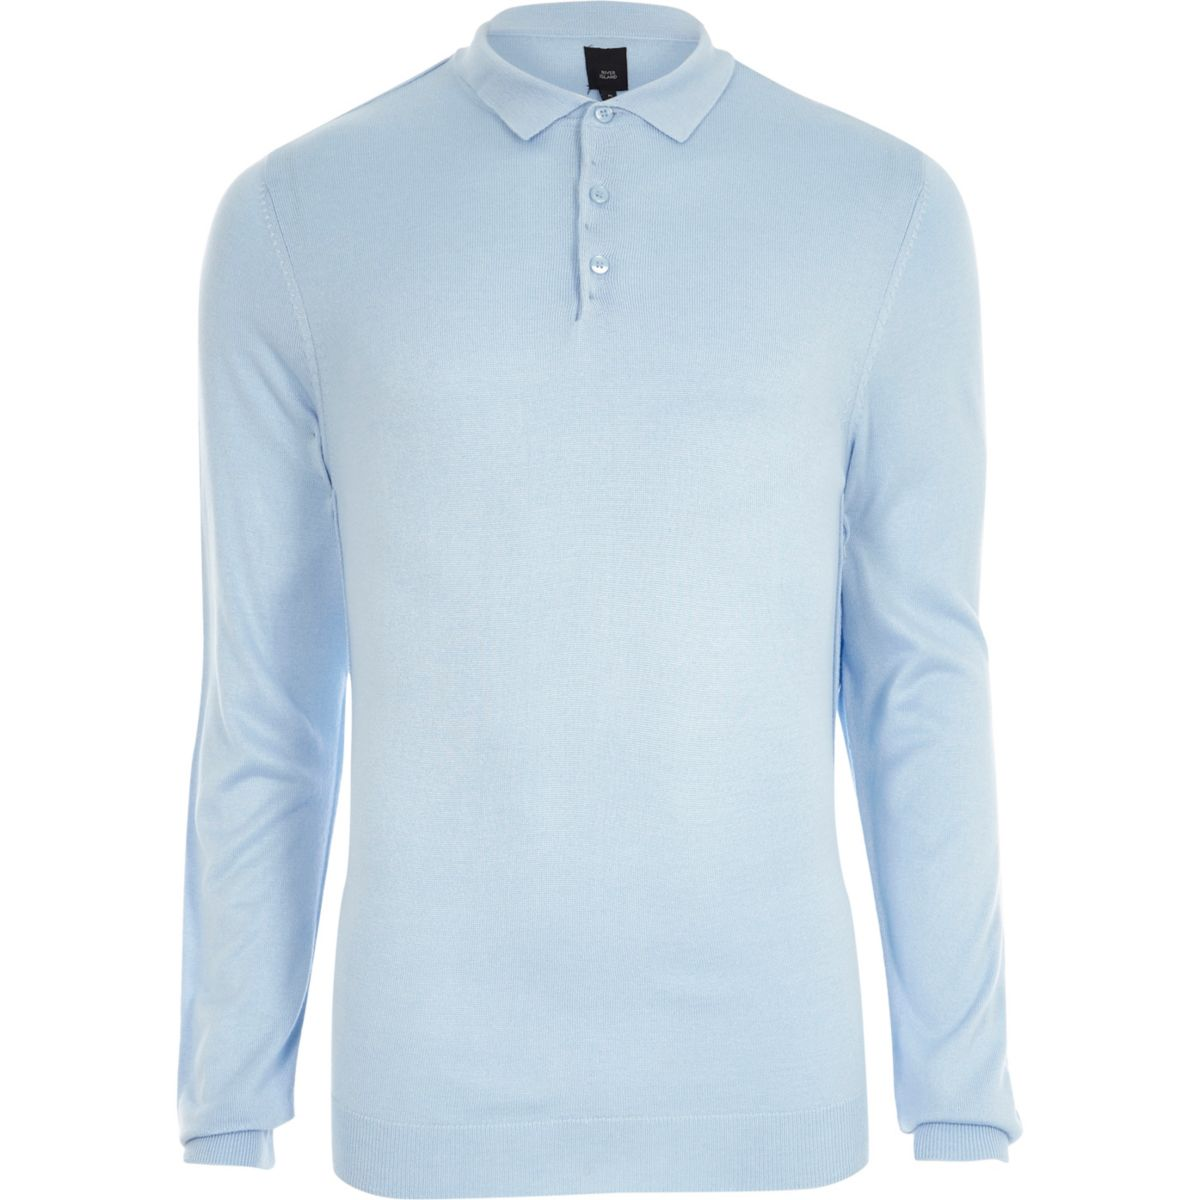 Blaues, langärmliges Slim Fit Polohemd